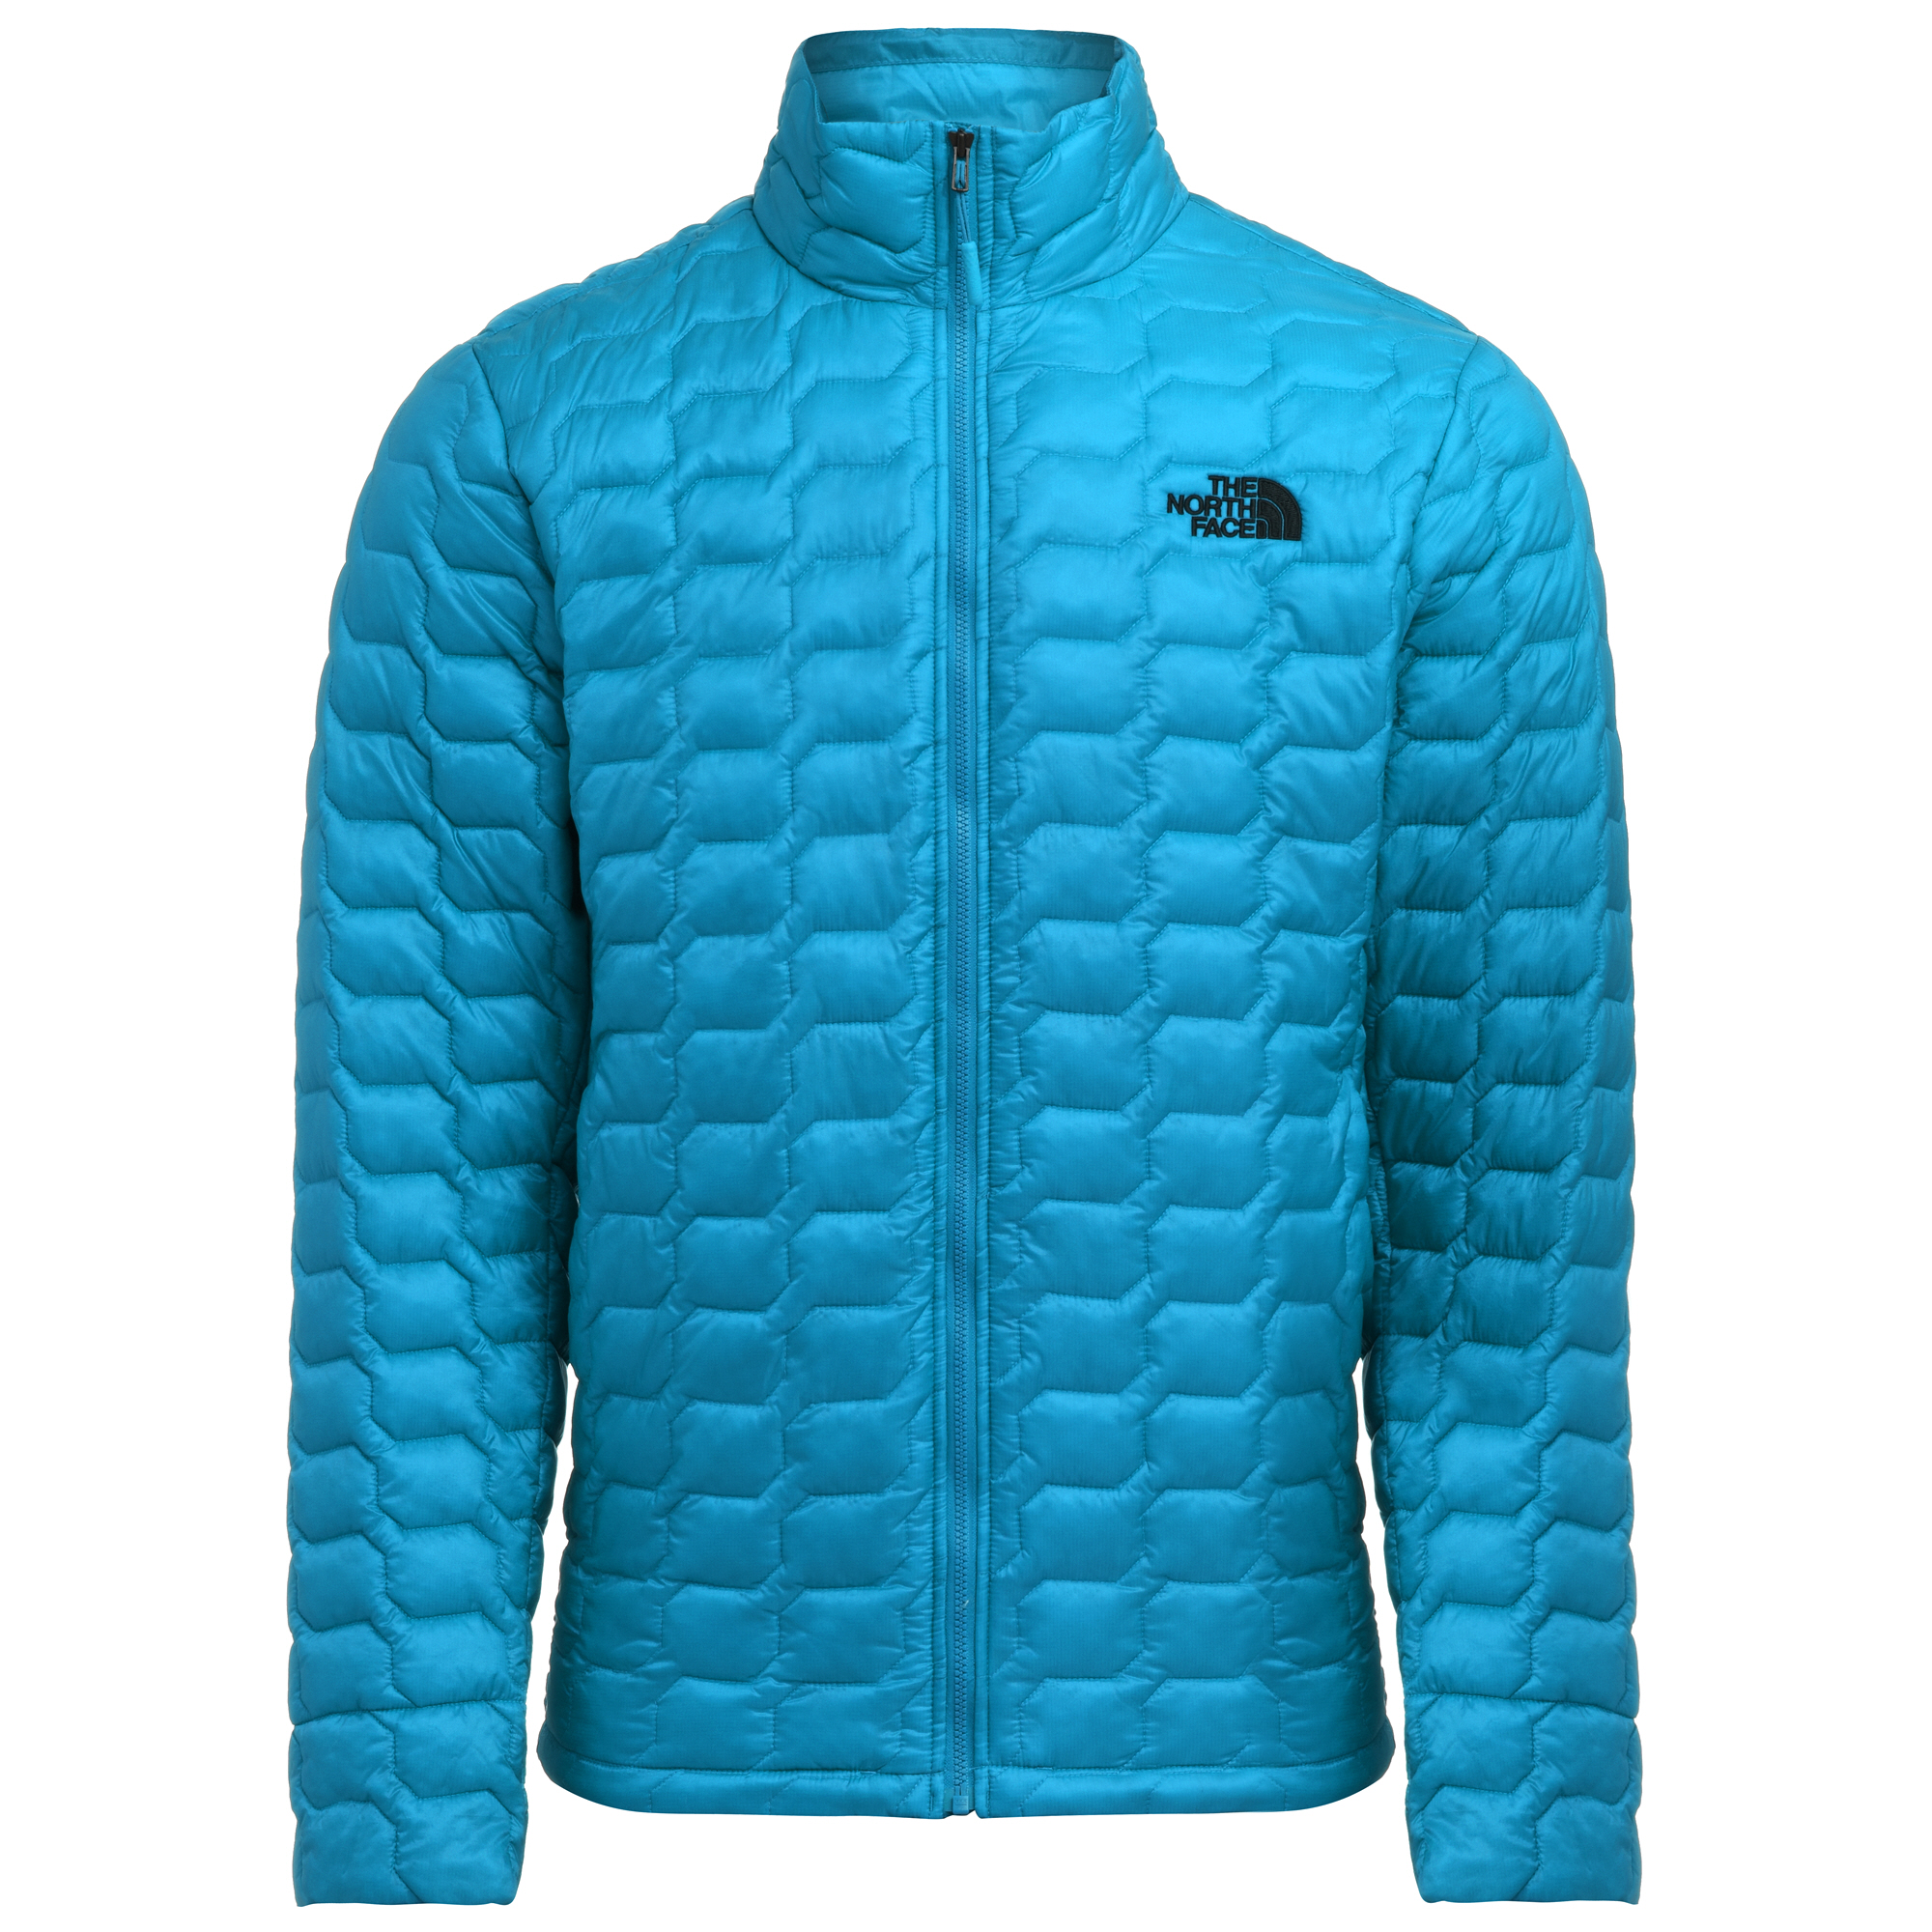 The North Face ThermoBall™ Jacket | Jackets